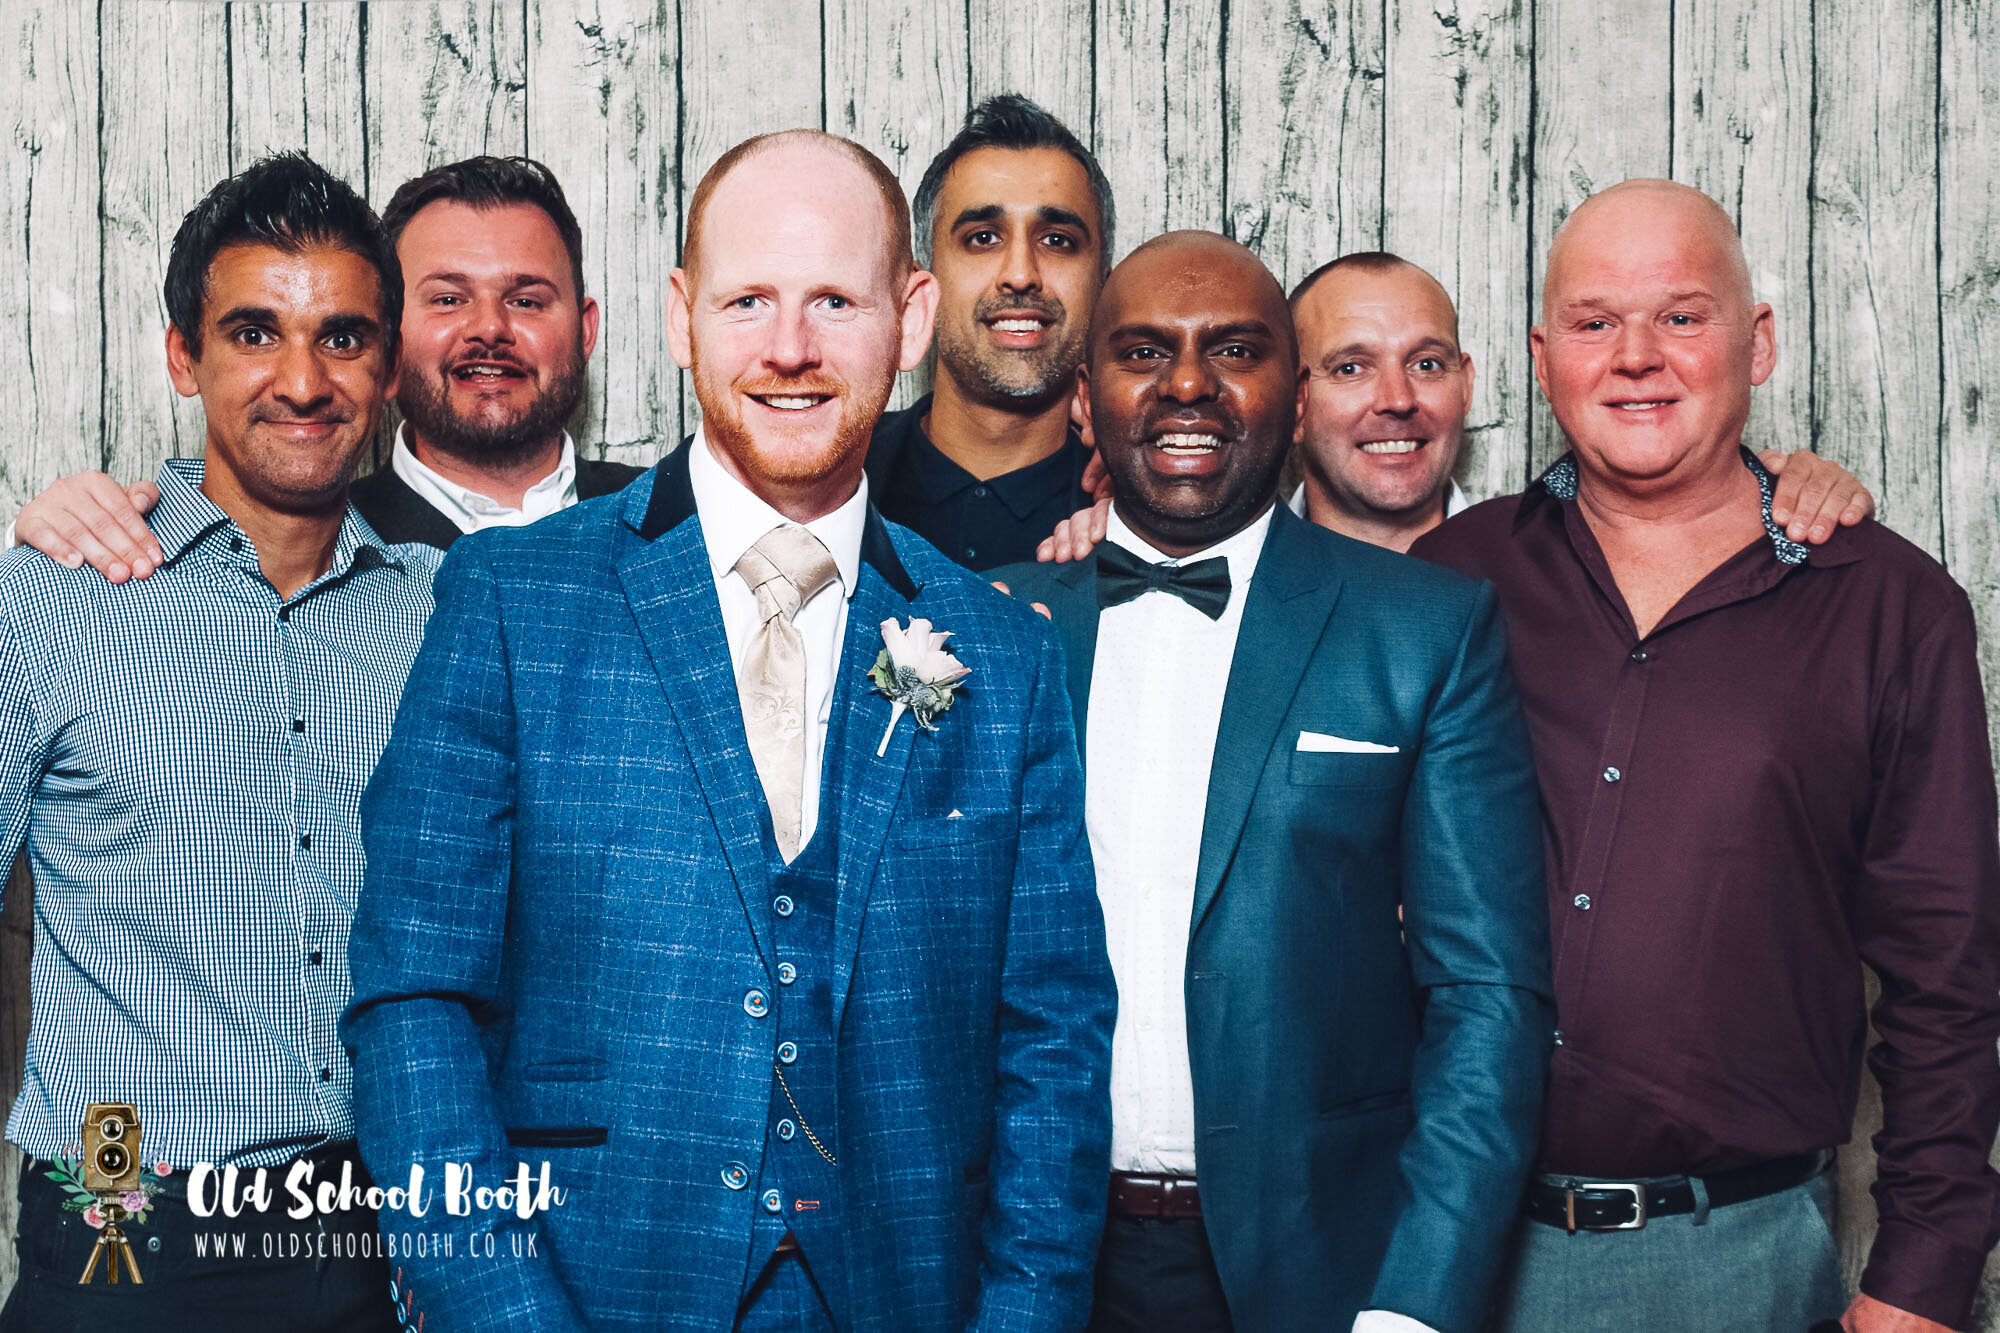 Wedding photo booth hire yorkshire